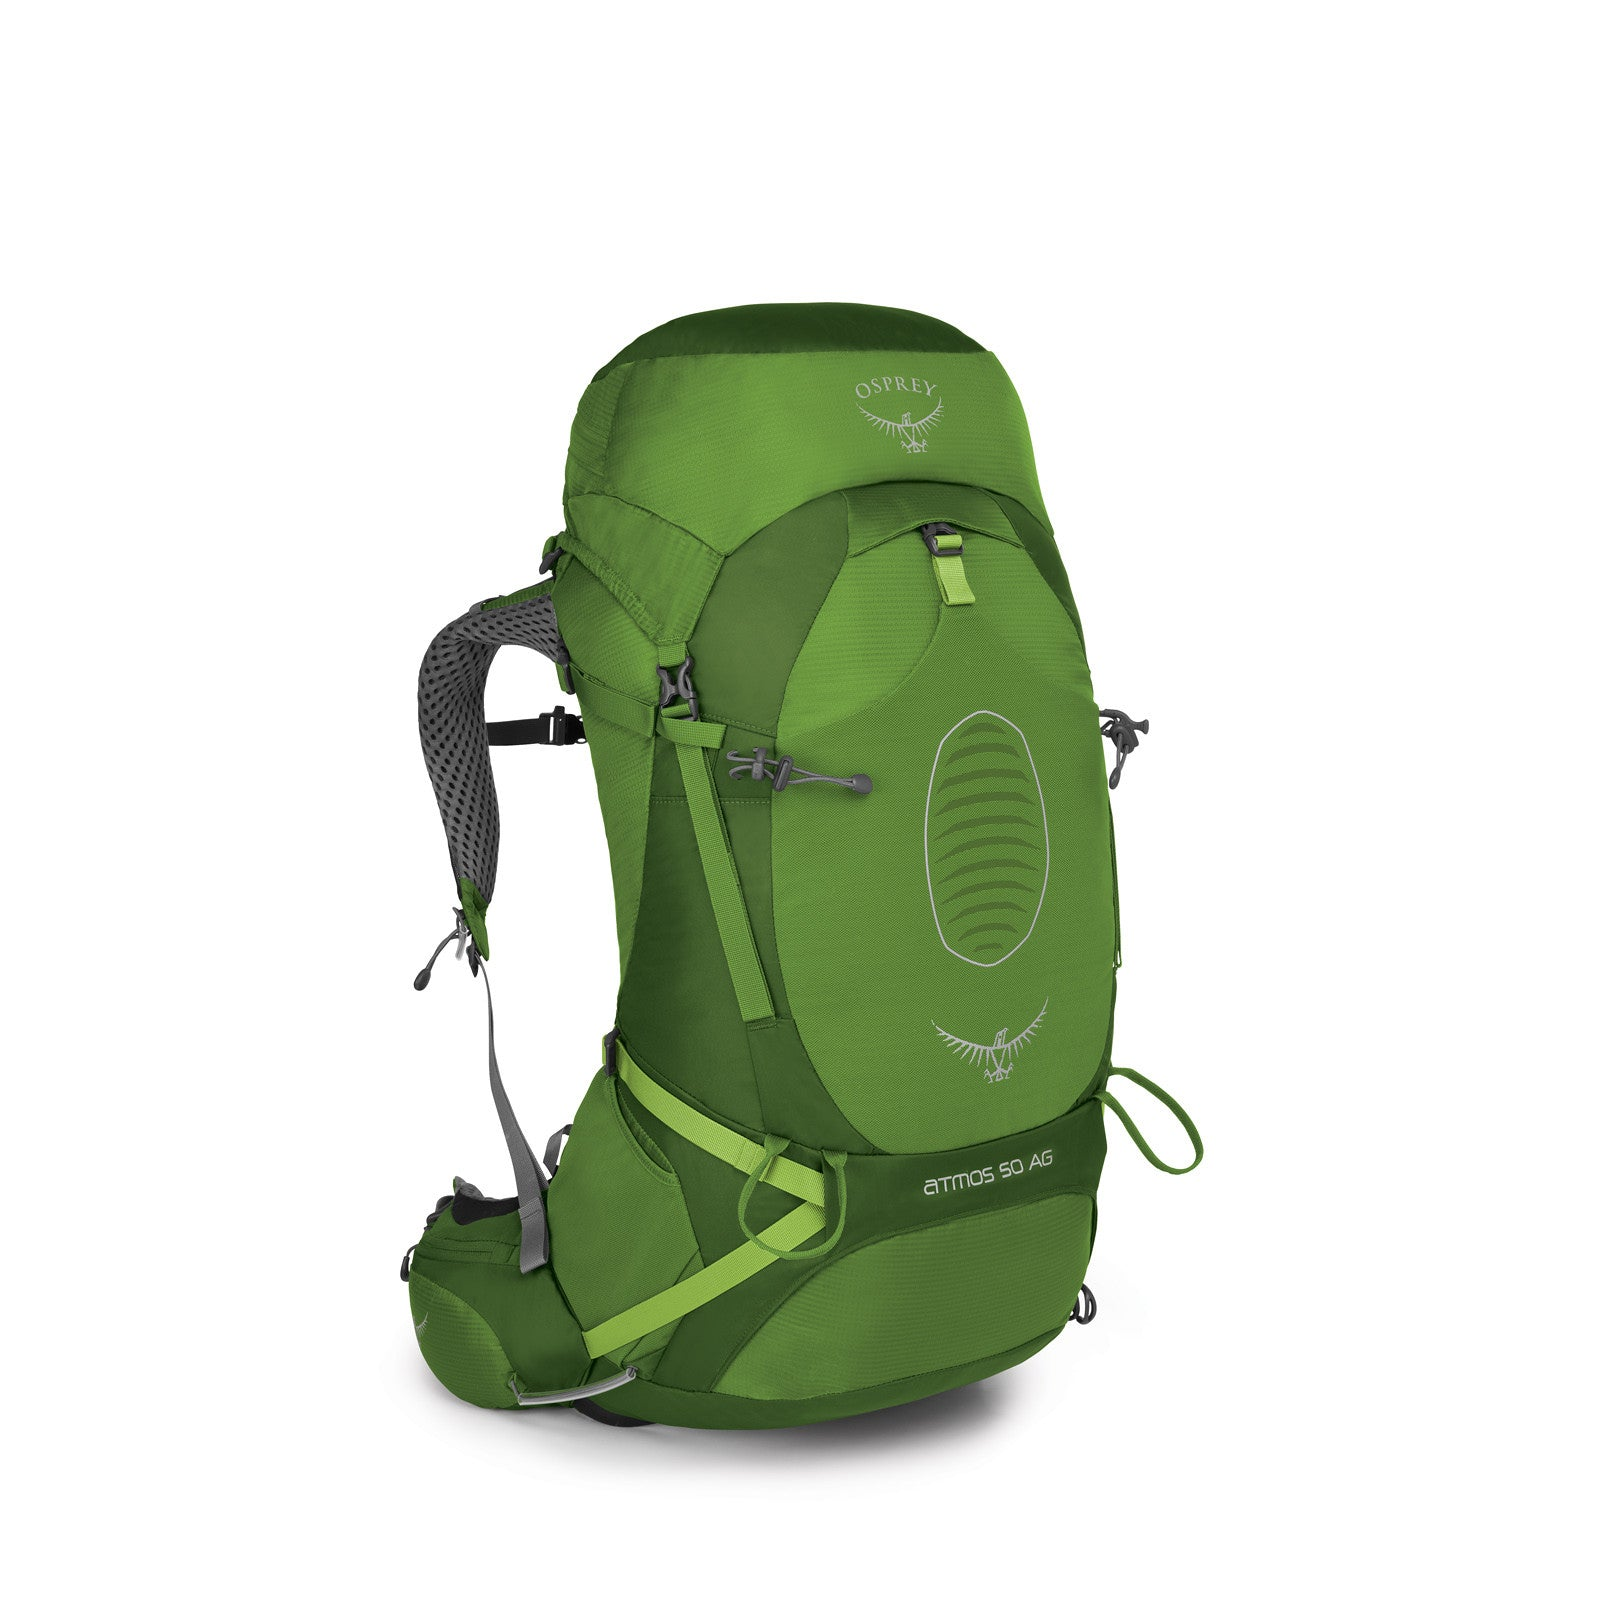 Osprey Atmos 50 Anti-Gravity Men's Backpack